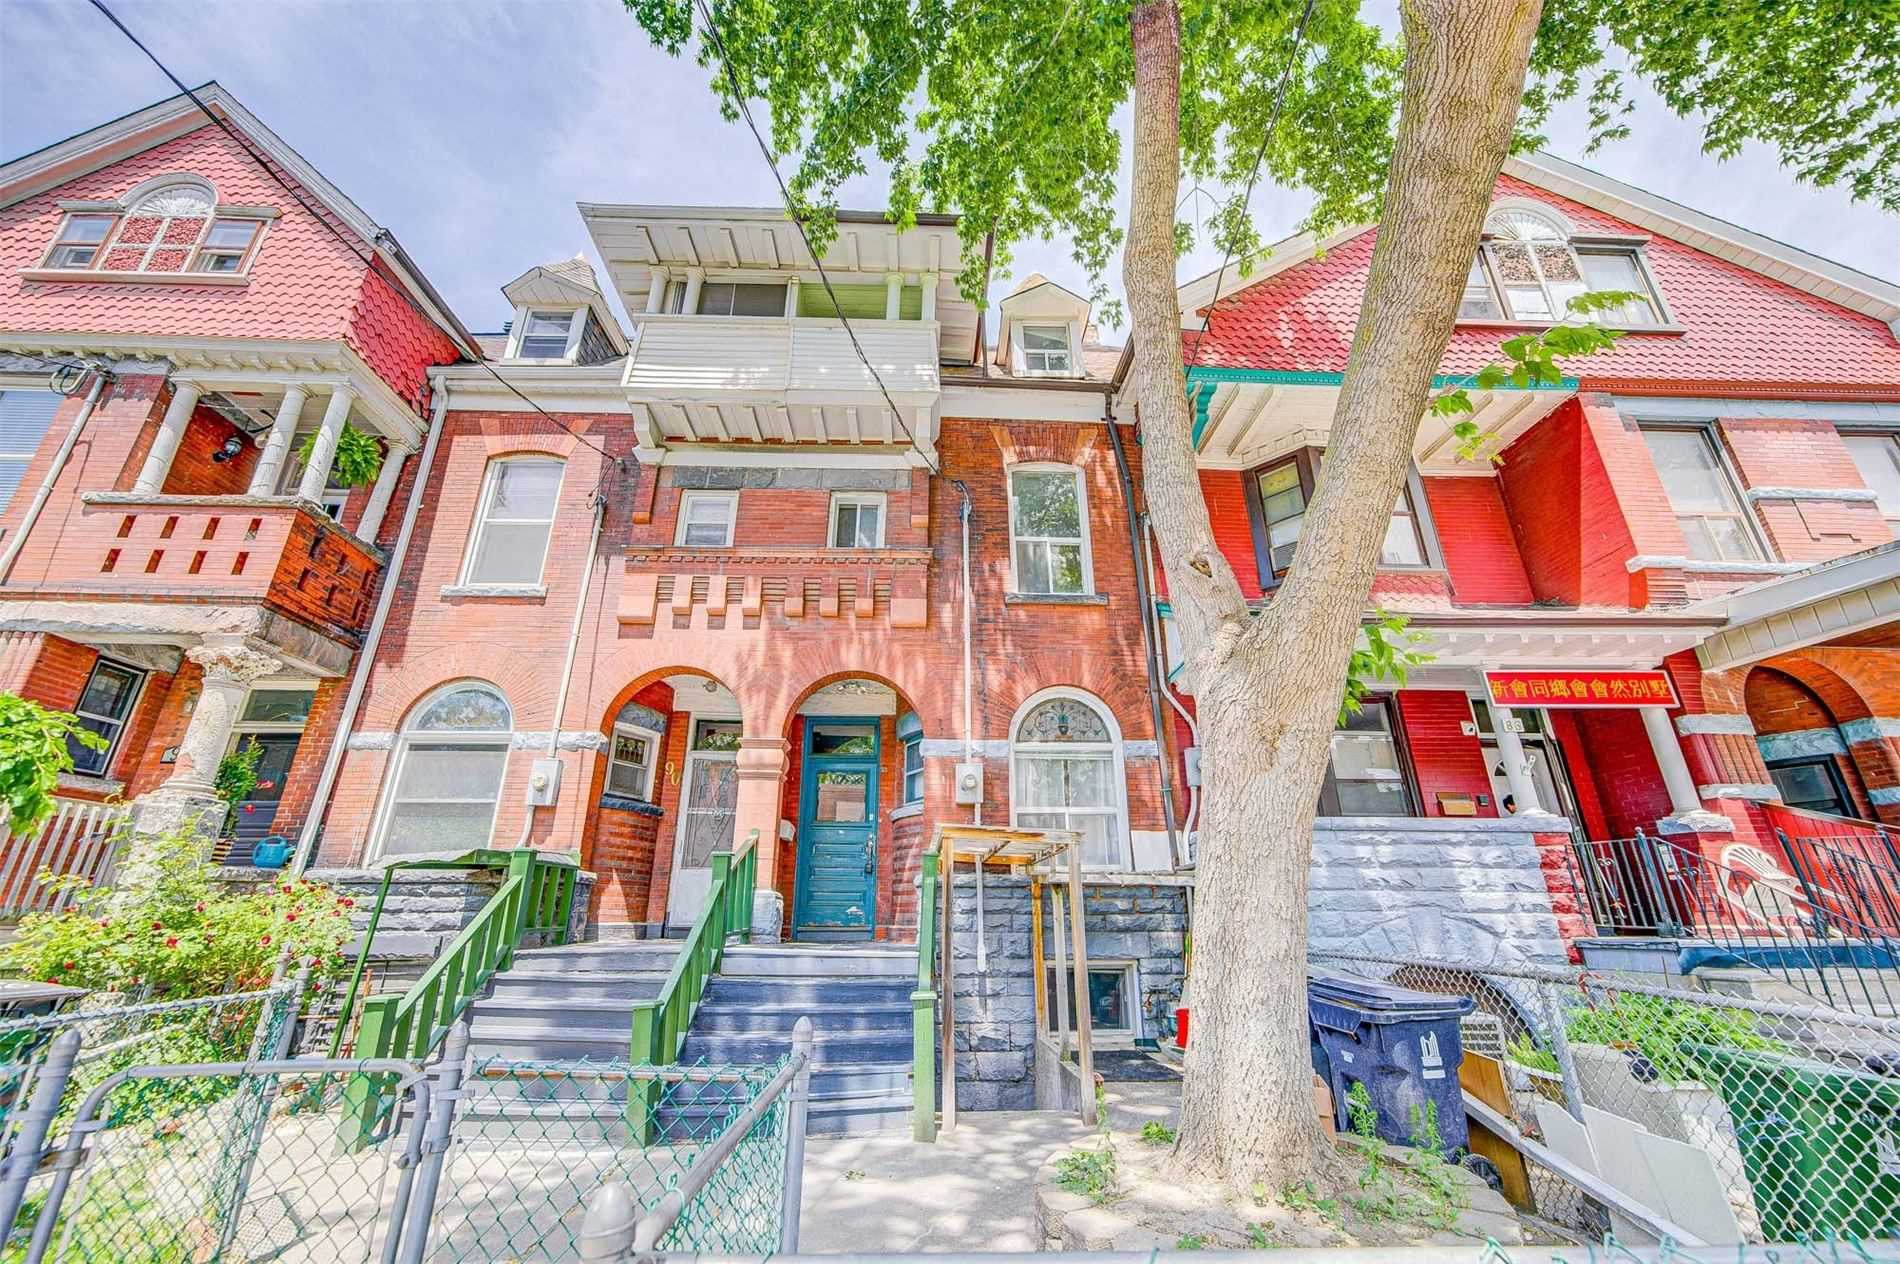 88 D'arcy St, Toronto, Ontario M5T1K1, 7 Bedrooms Bedrooms, 8 Rooms Rooms,7 BathroomsBathrooms,Att/row/twnhouse,For Sale,D'arcy,C5333610